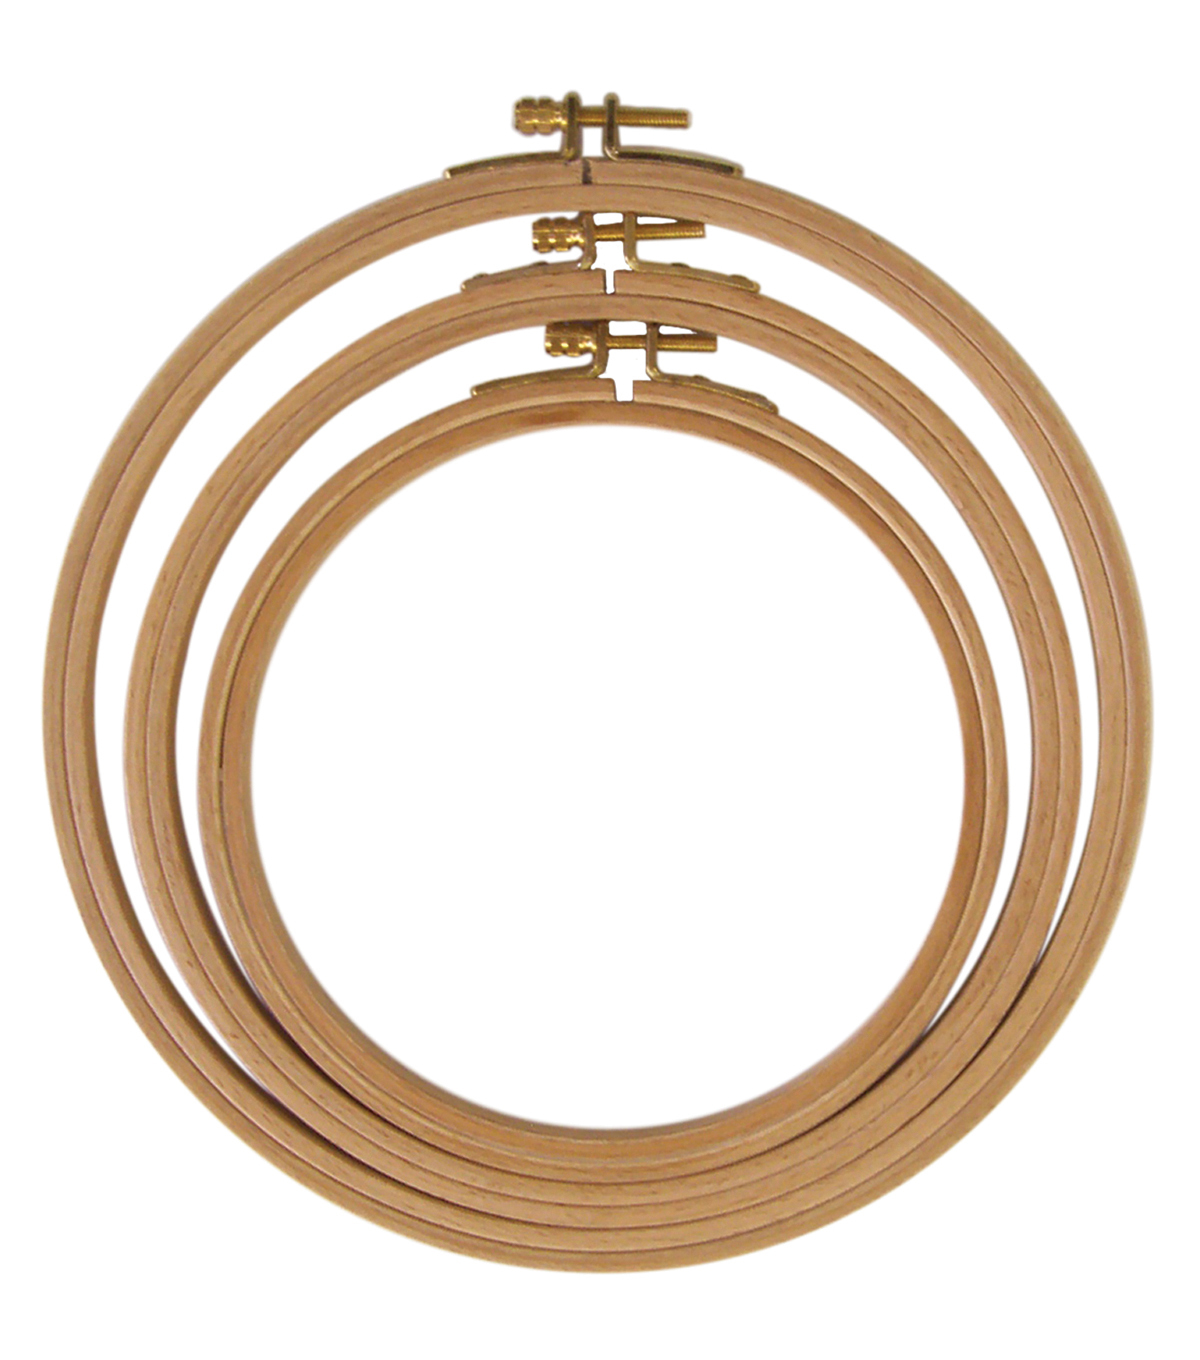 10-Inch Edmunds German Hand or Machine Embroidery Hoop